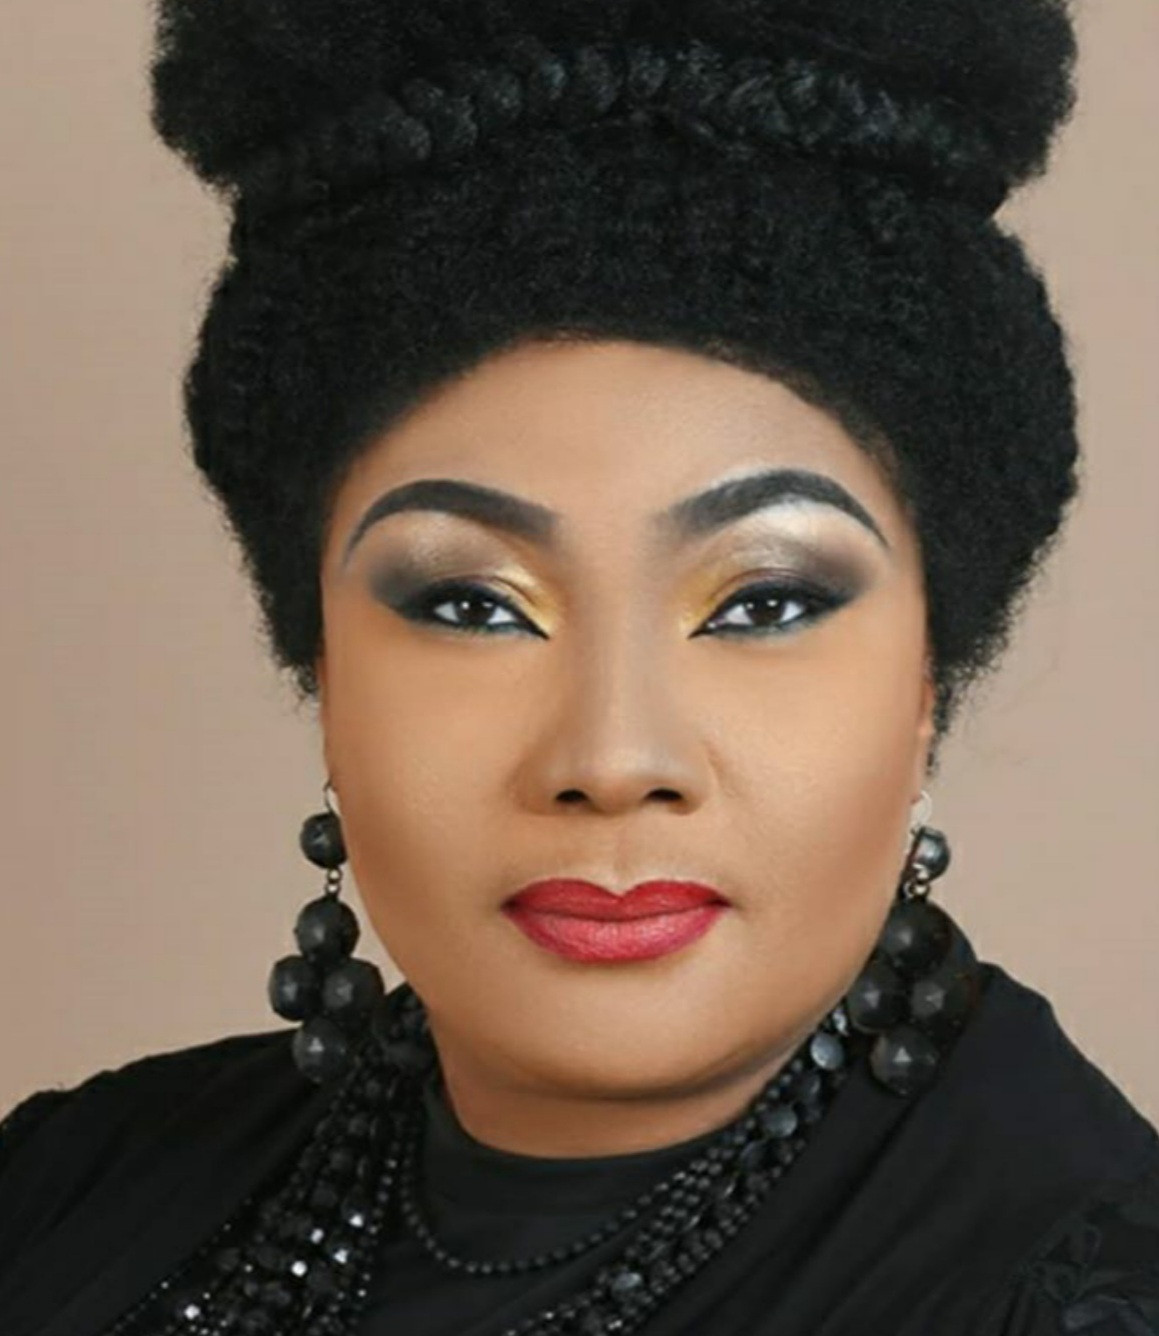 Receive sense in Jesus name - Eucharia Anunobi prays for ladies who date married men